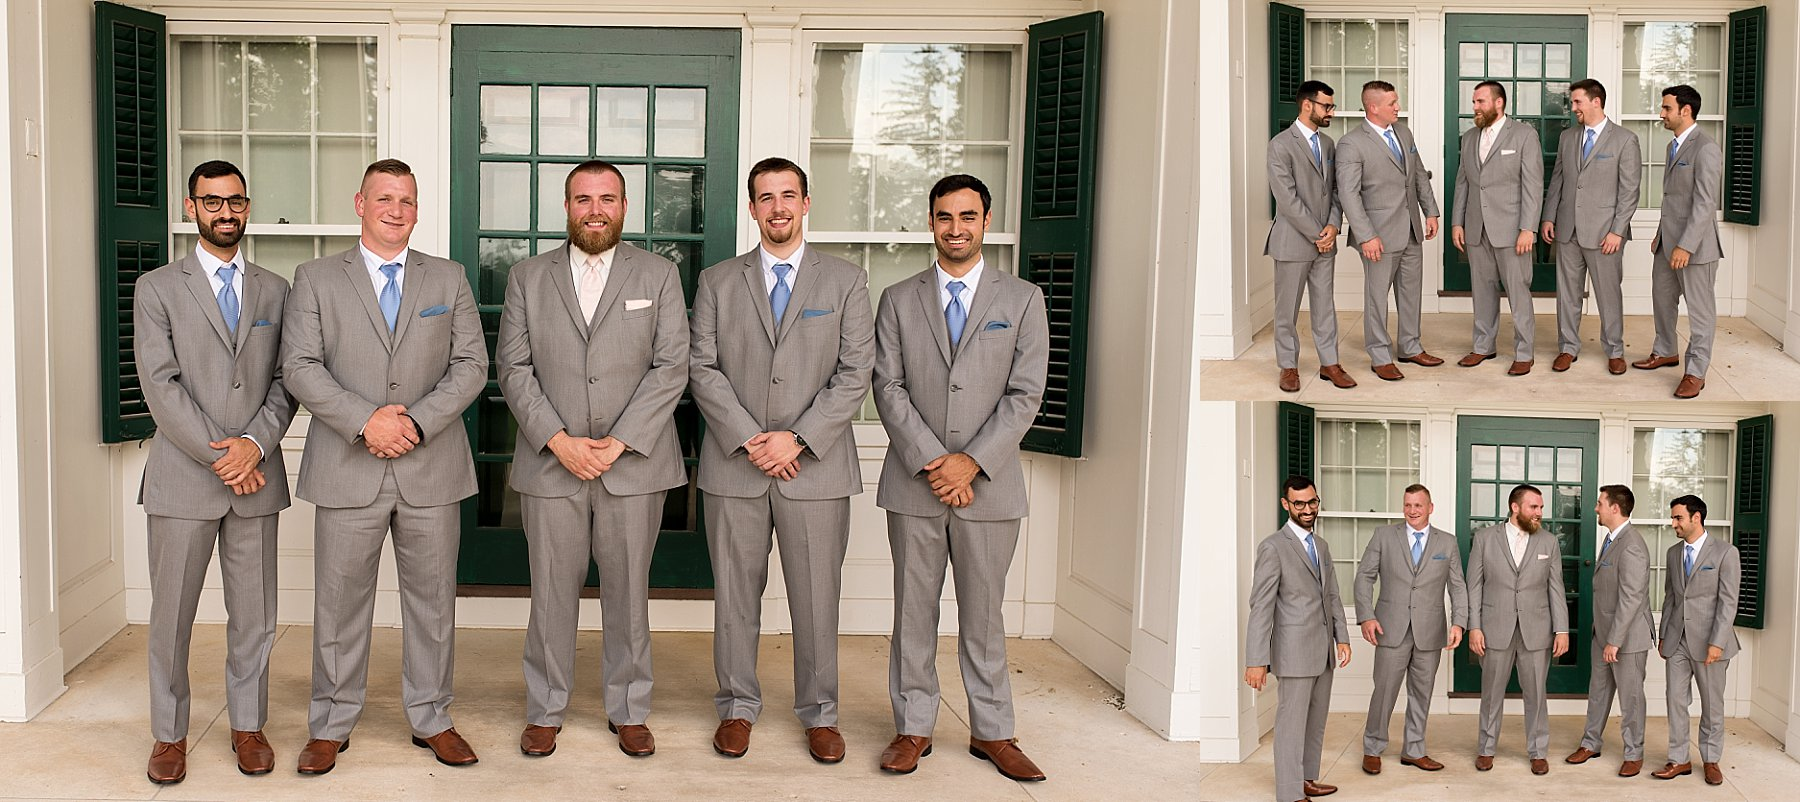 Groom and groomsmen getting ready on wedding day in Connecticut